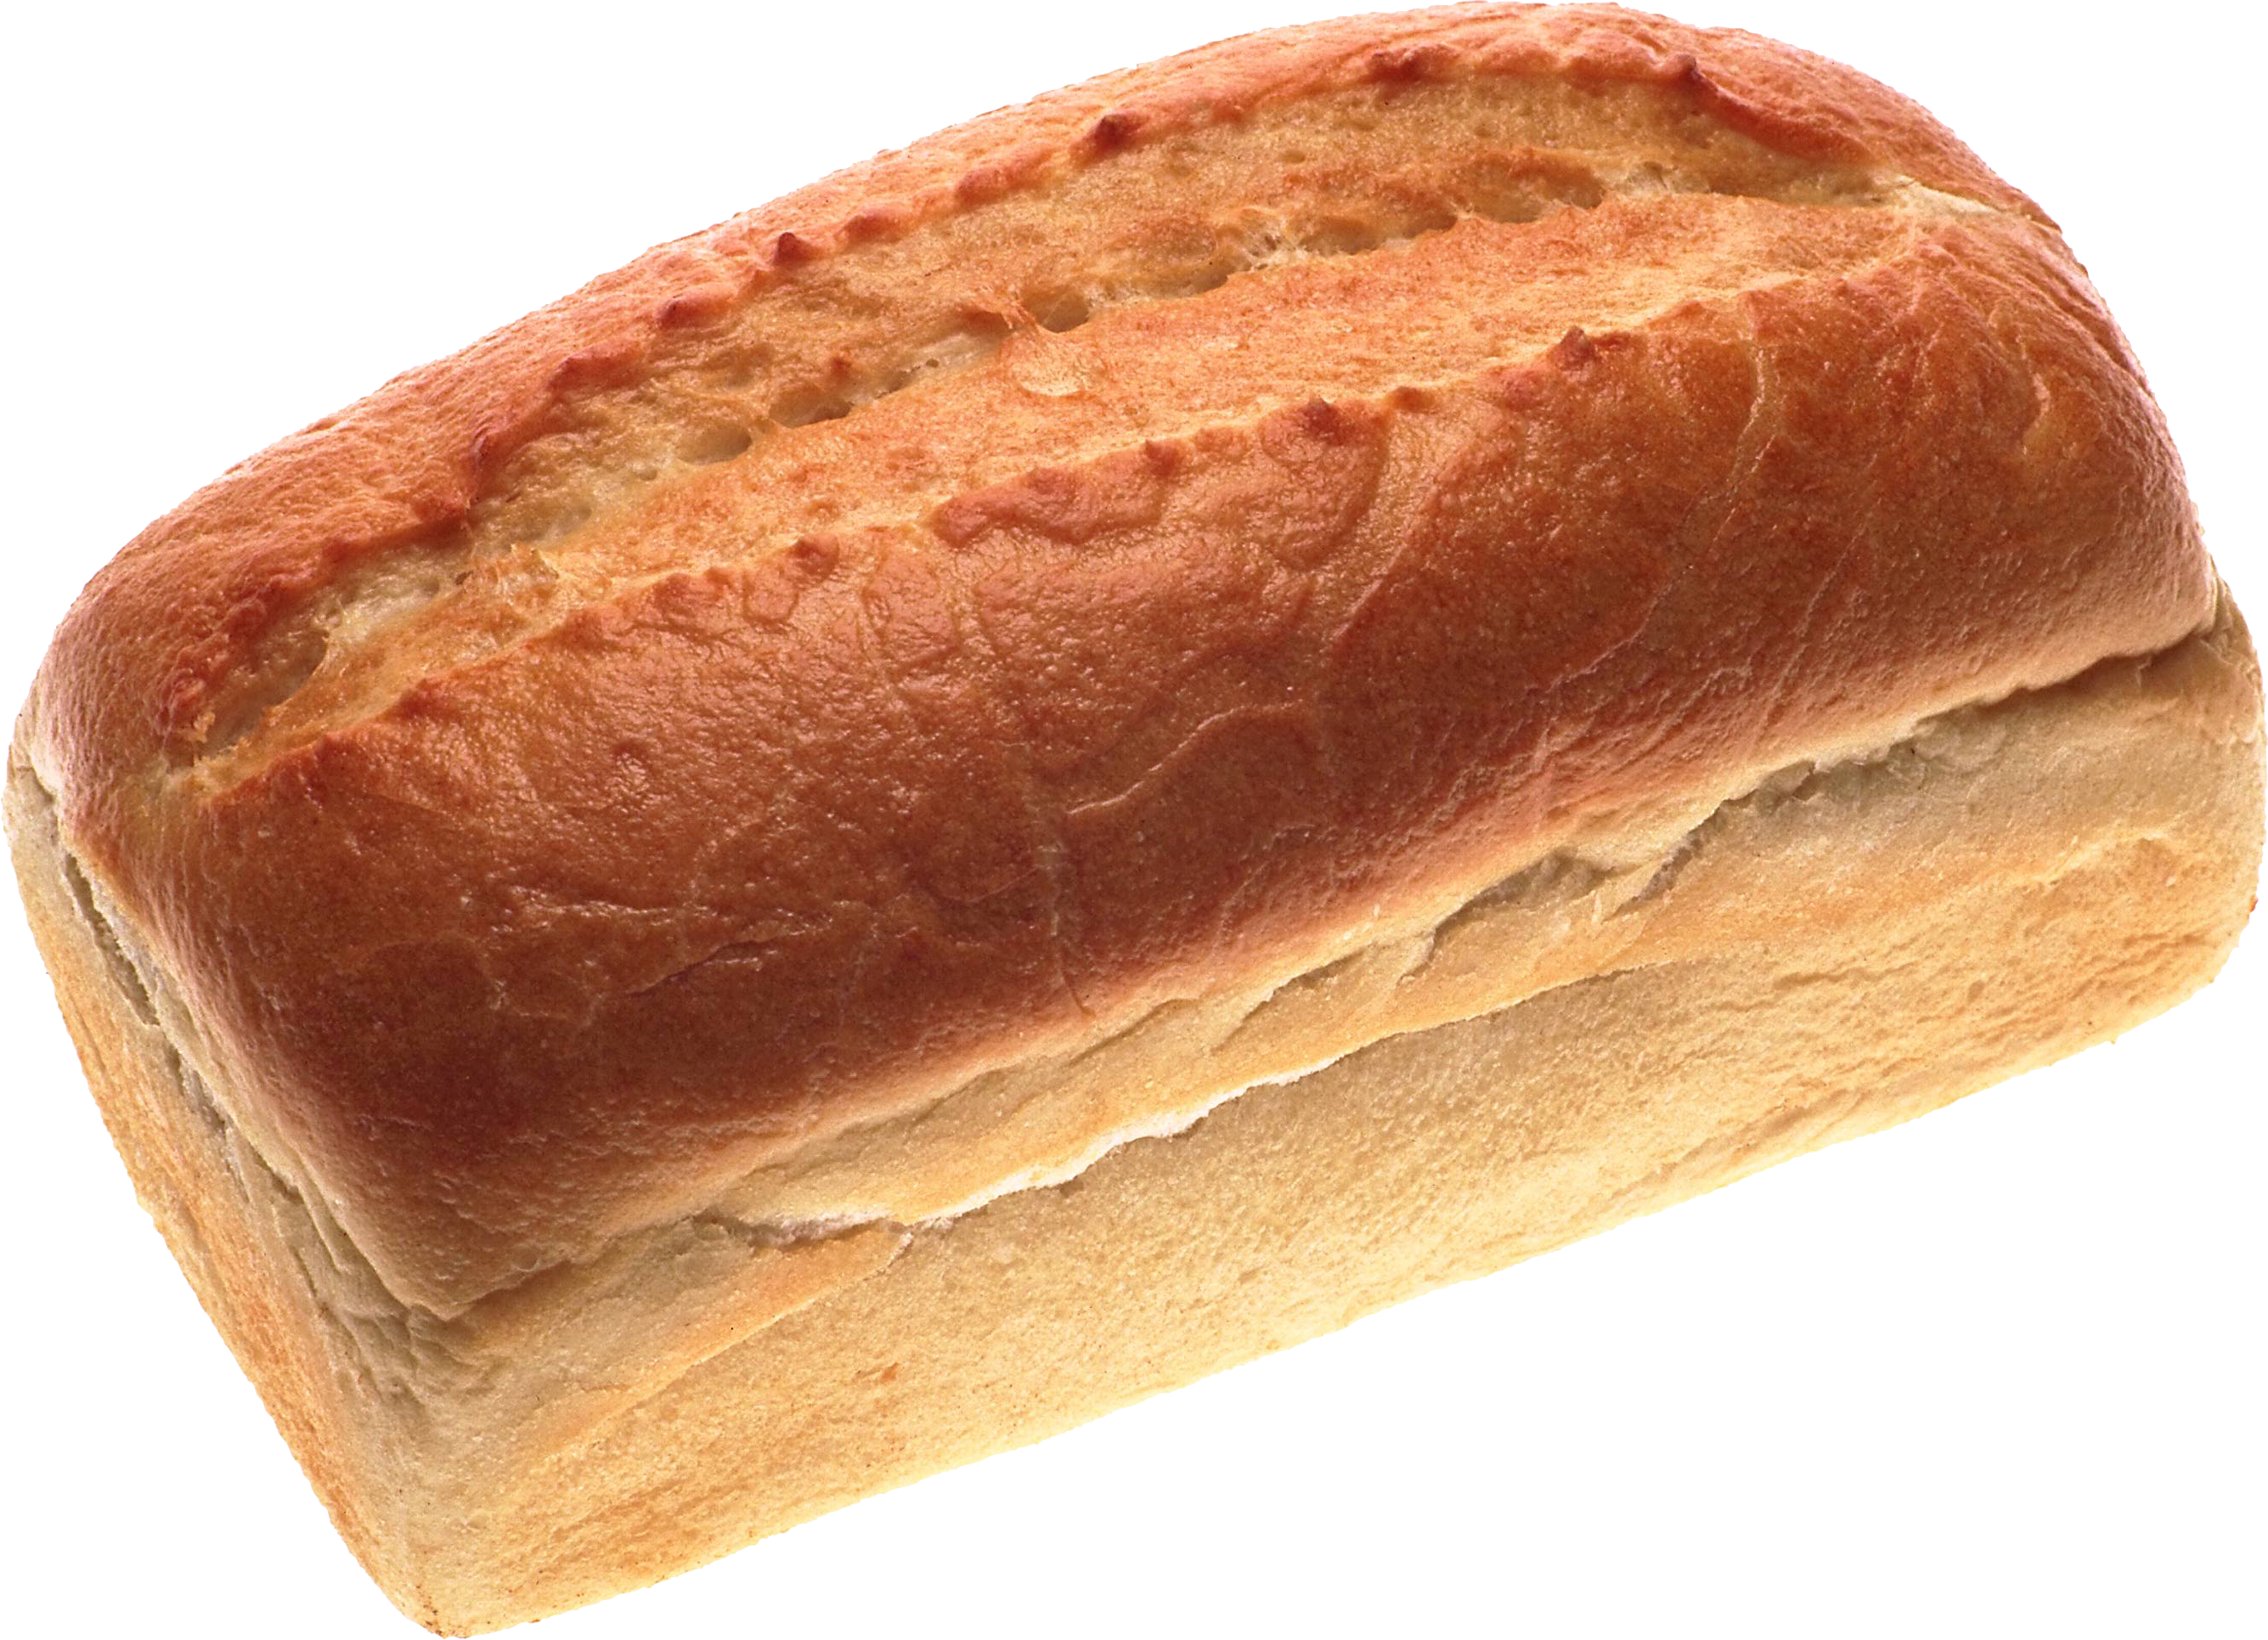 Hd images transparent pluspng. Bread loaf png clip art black and white